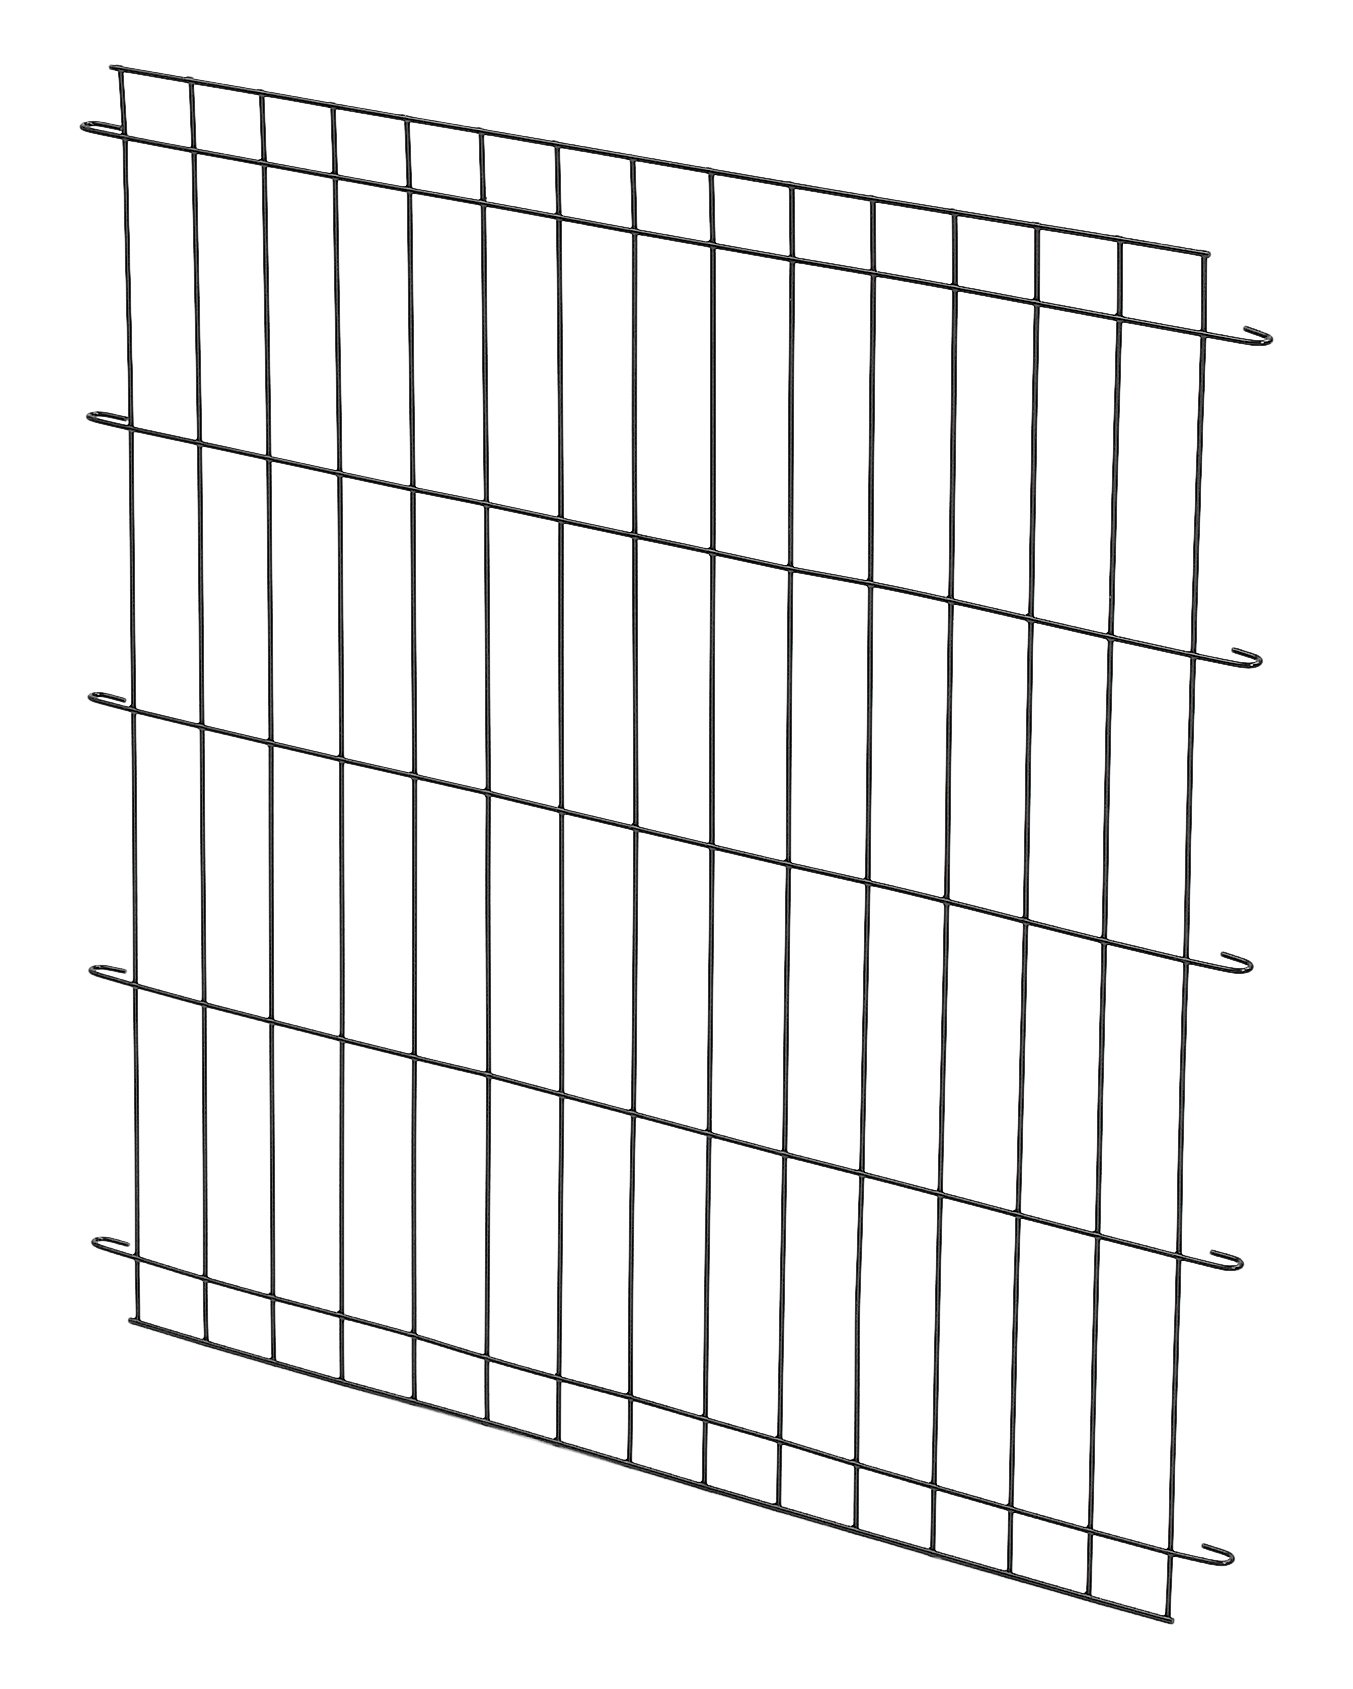 MidWest Homes for Pets Divider Panel Fits Models 1636, 1636DD, 1936 and 736UP